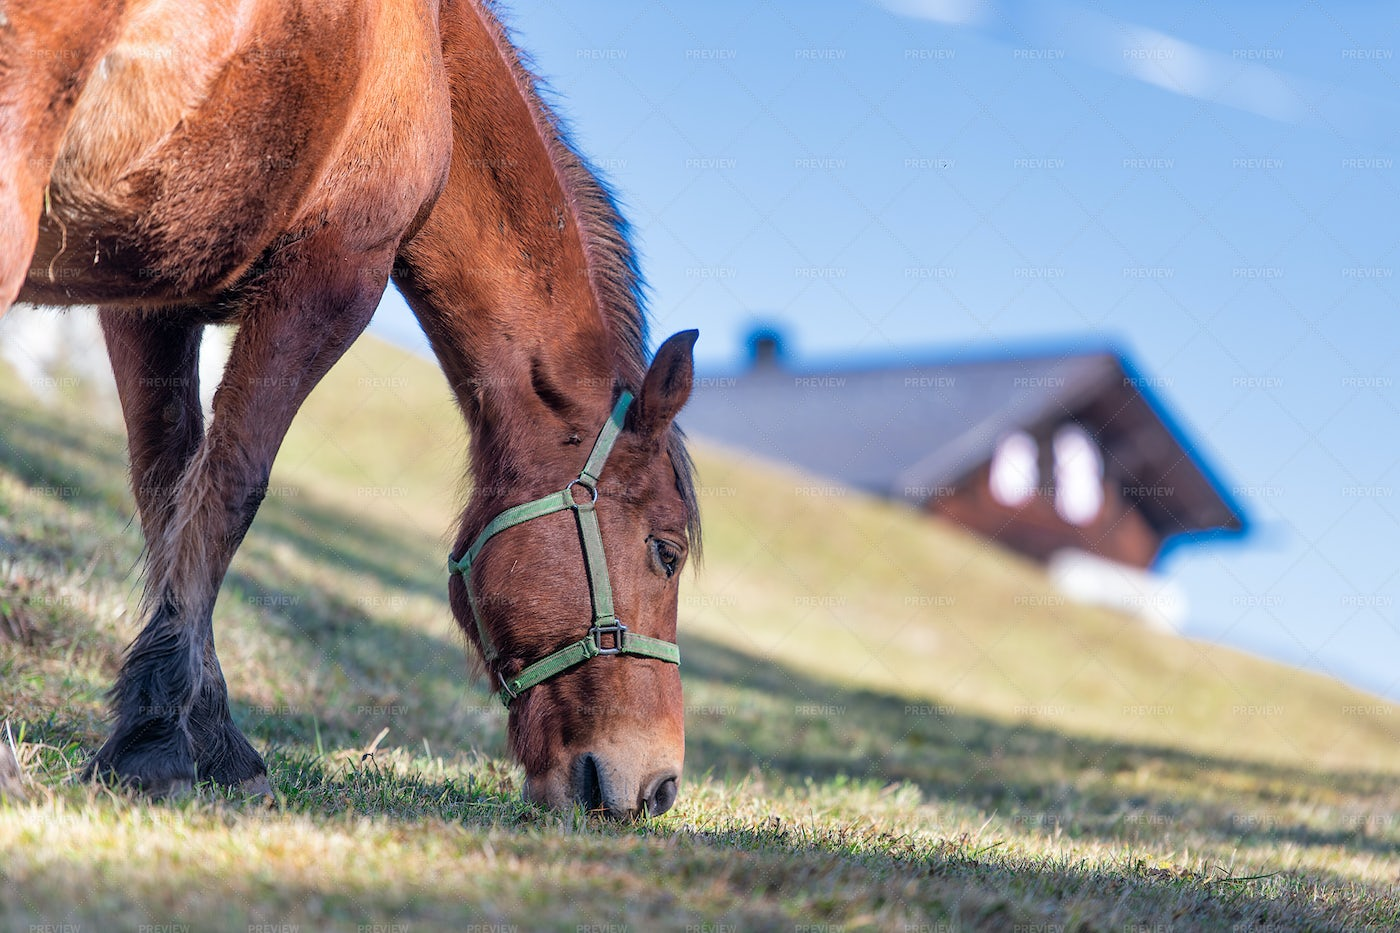 Horse Eating Pasture: Stock Photos